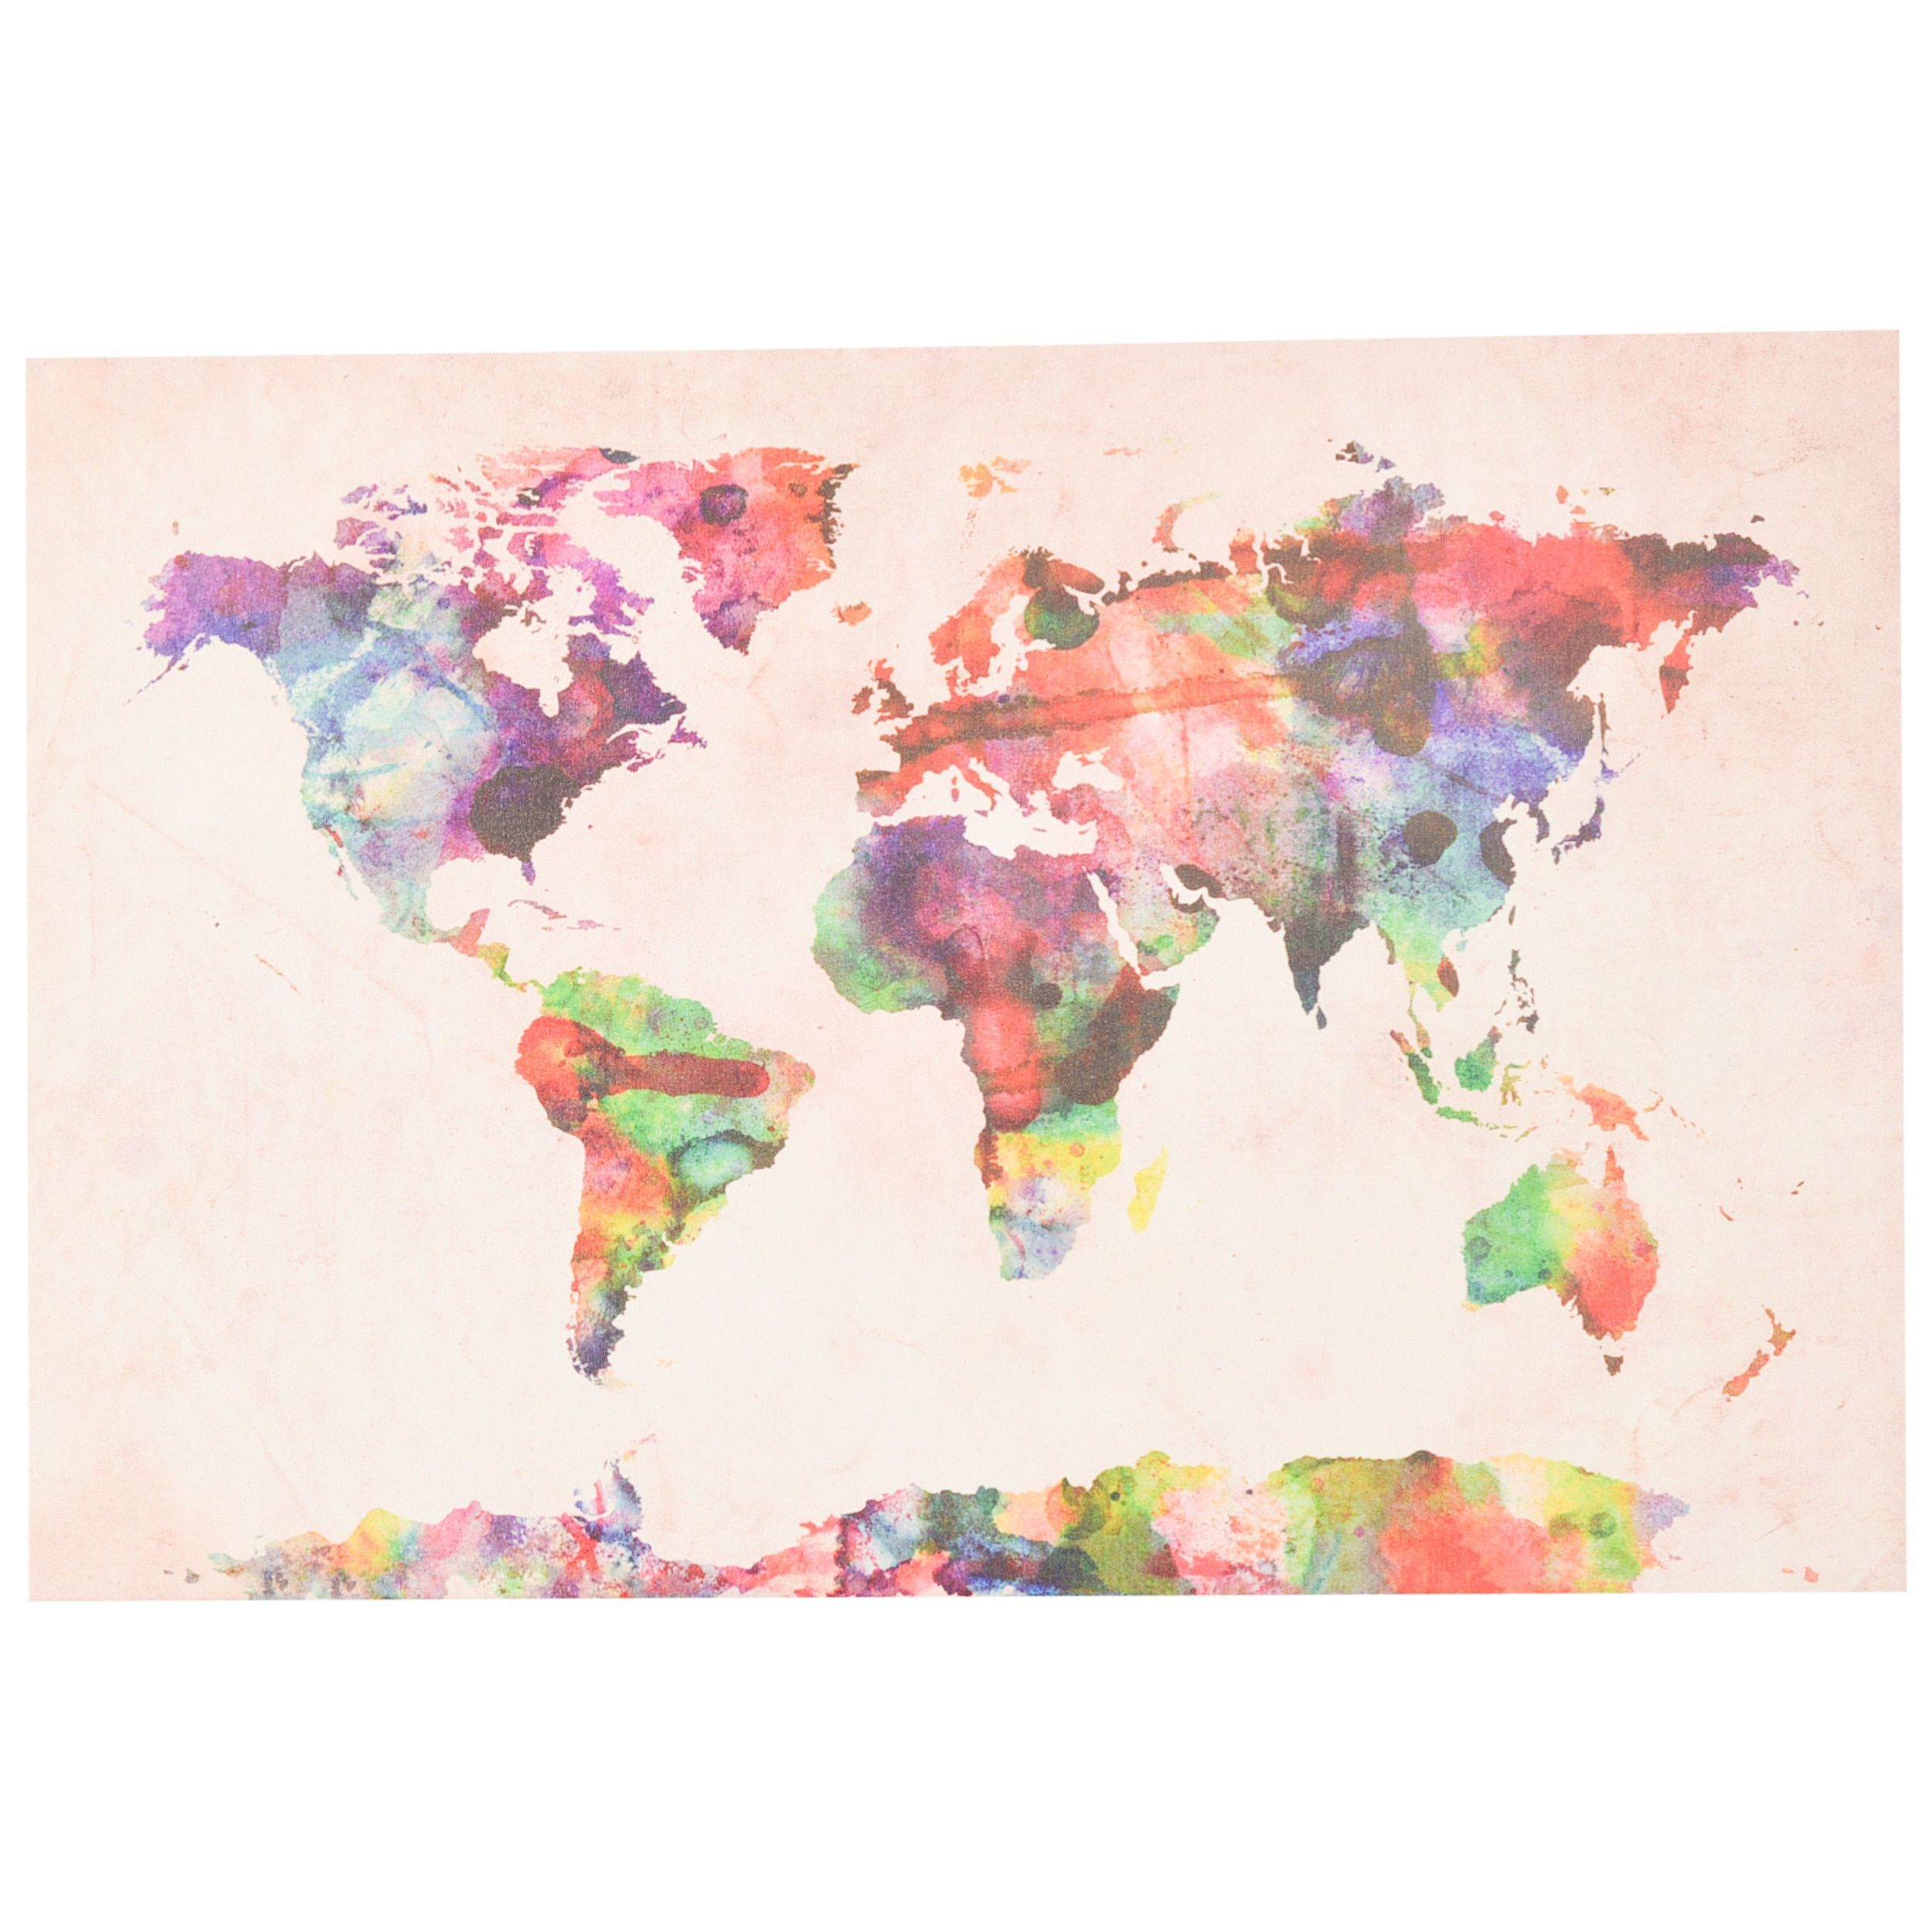 Michael tompsett urban watercolor world map art products michael tompsett urban watercolor world map art publicscrutiny Image collections